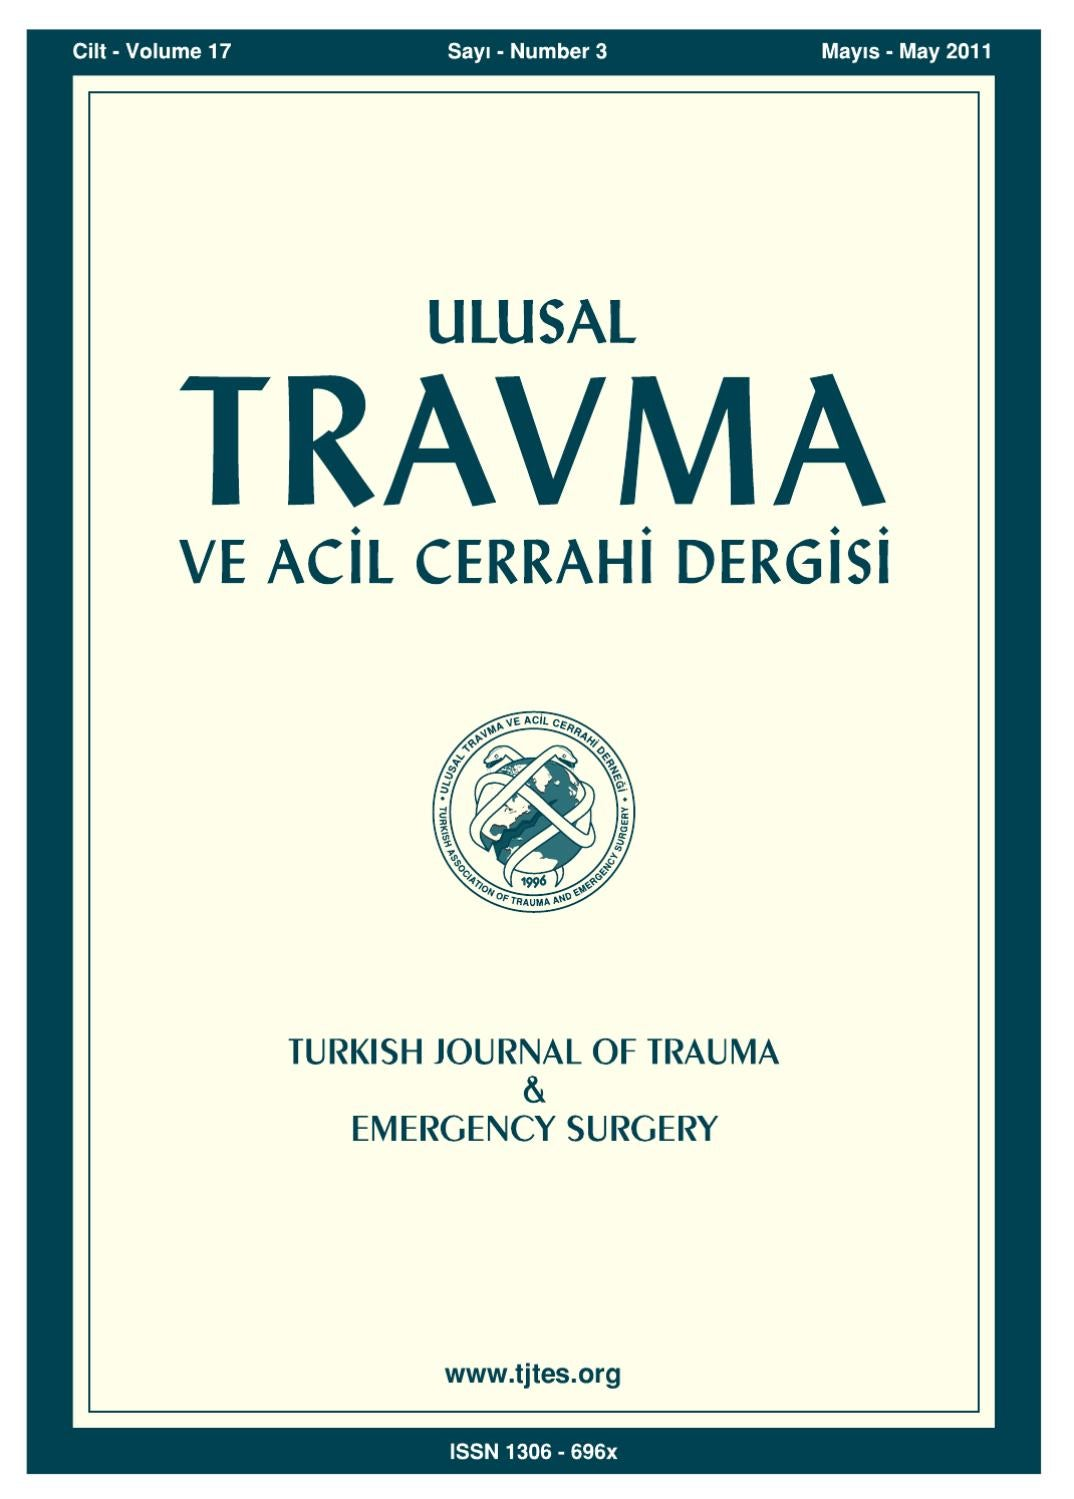 Travma 2011 3 By Karepublishing Issuu